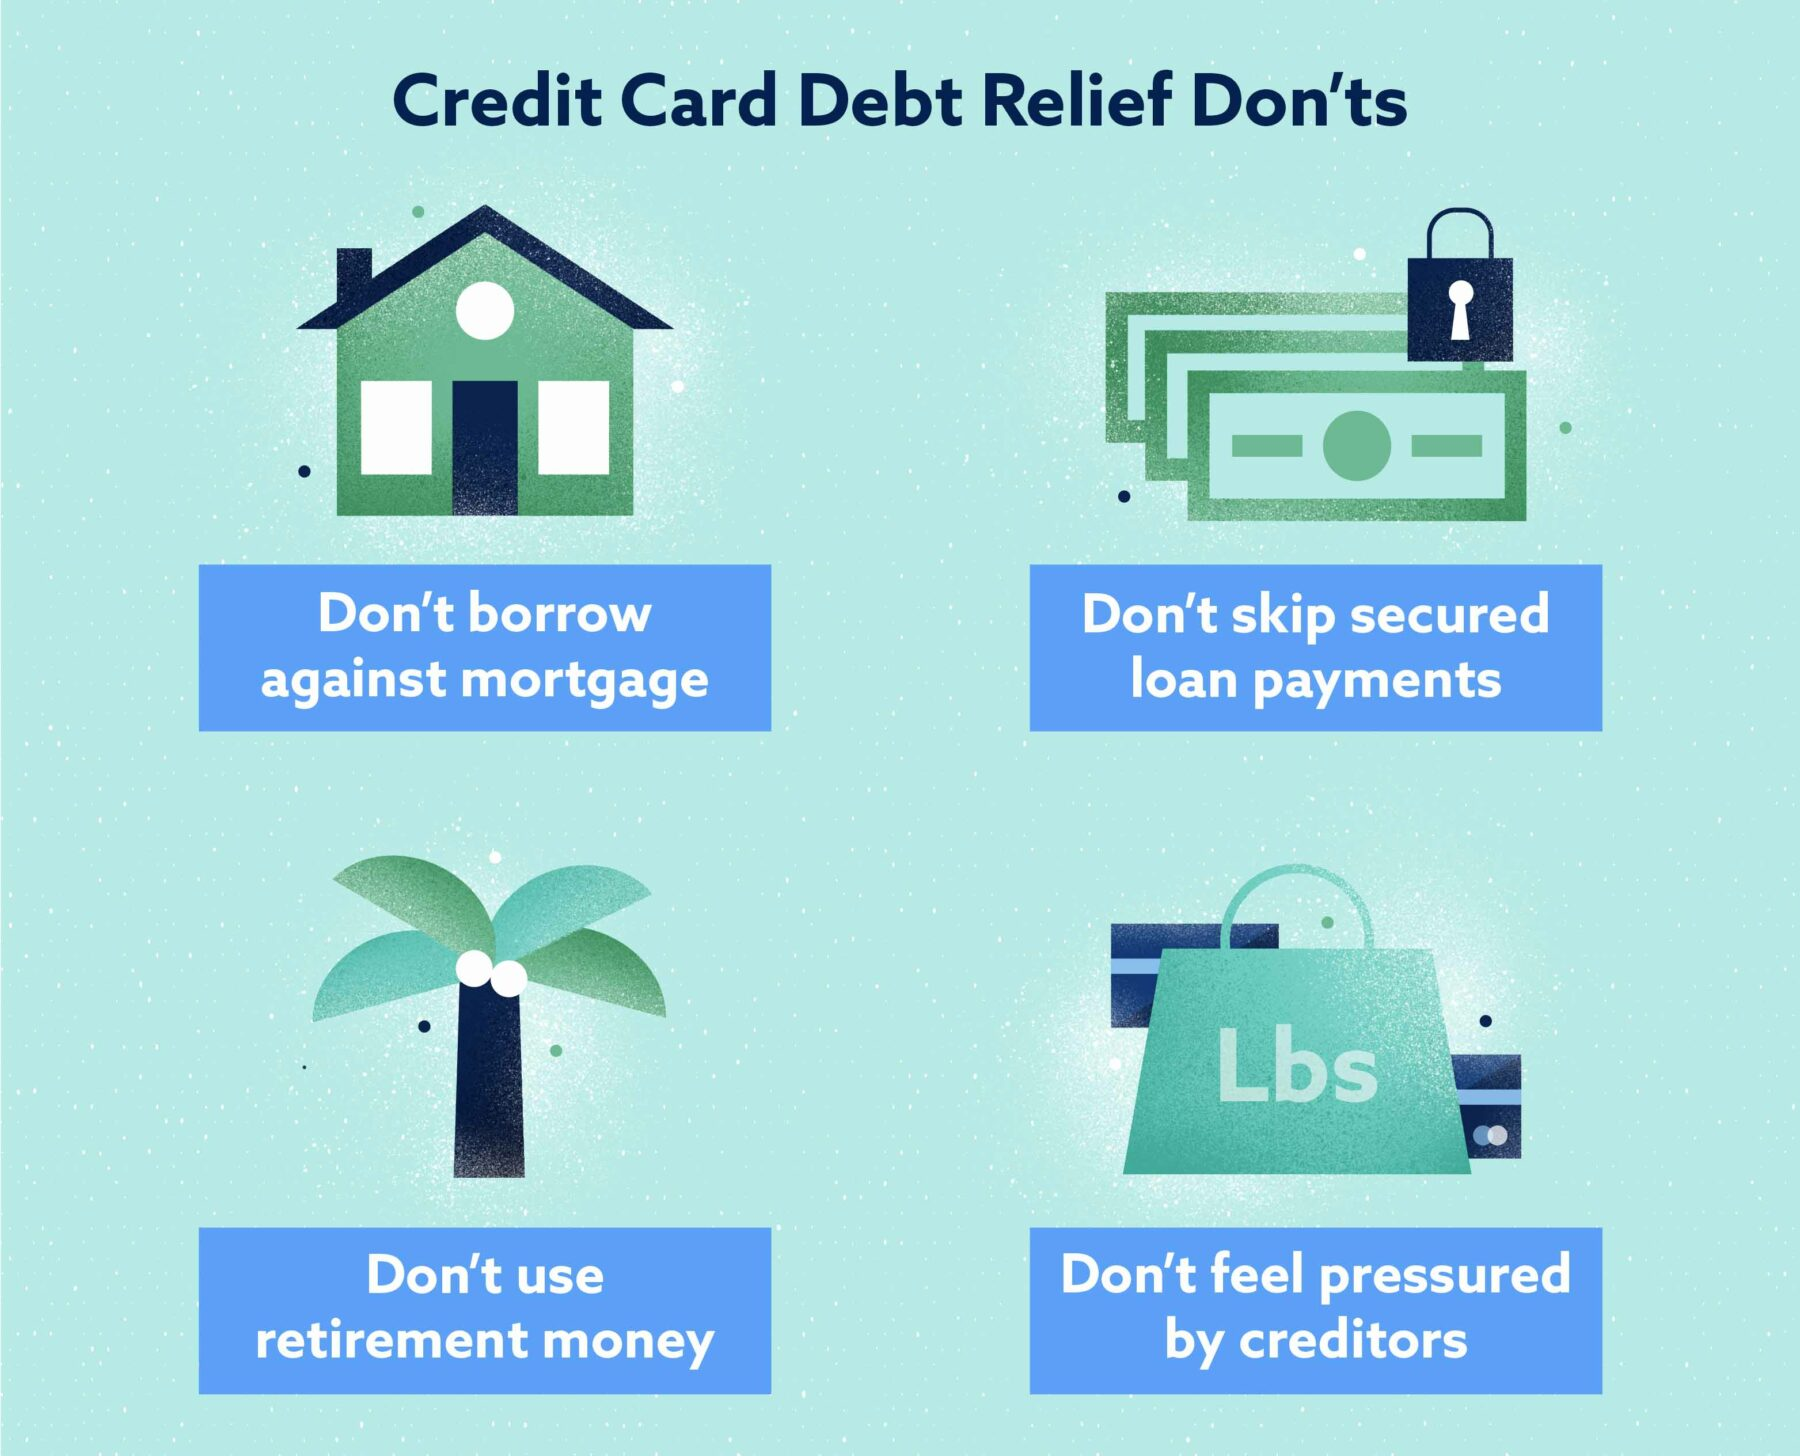 Credit Card Debt Relief Don'ts Image